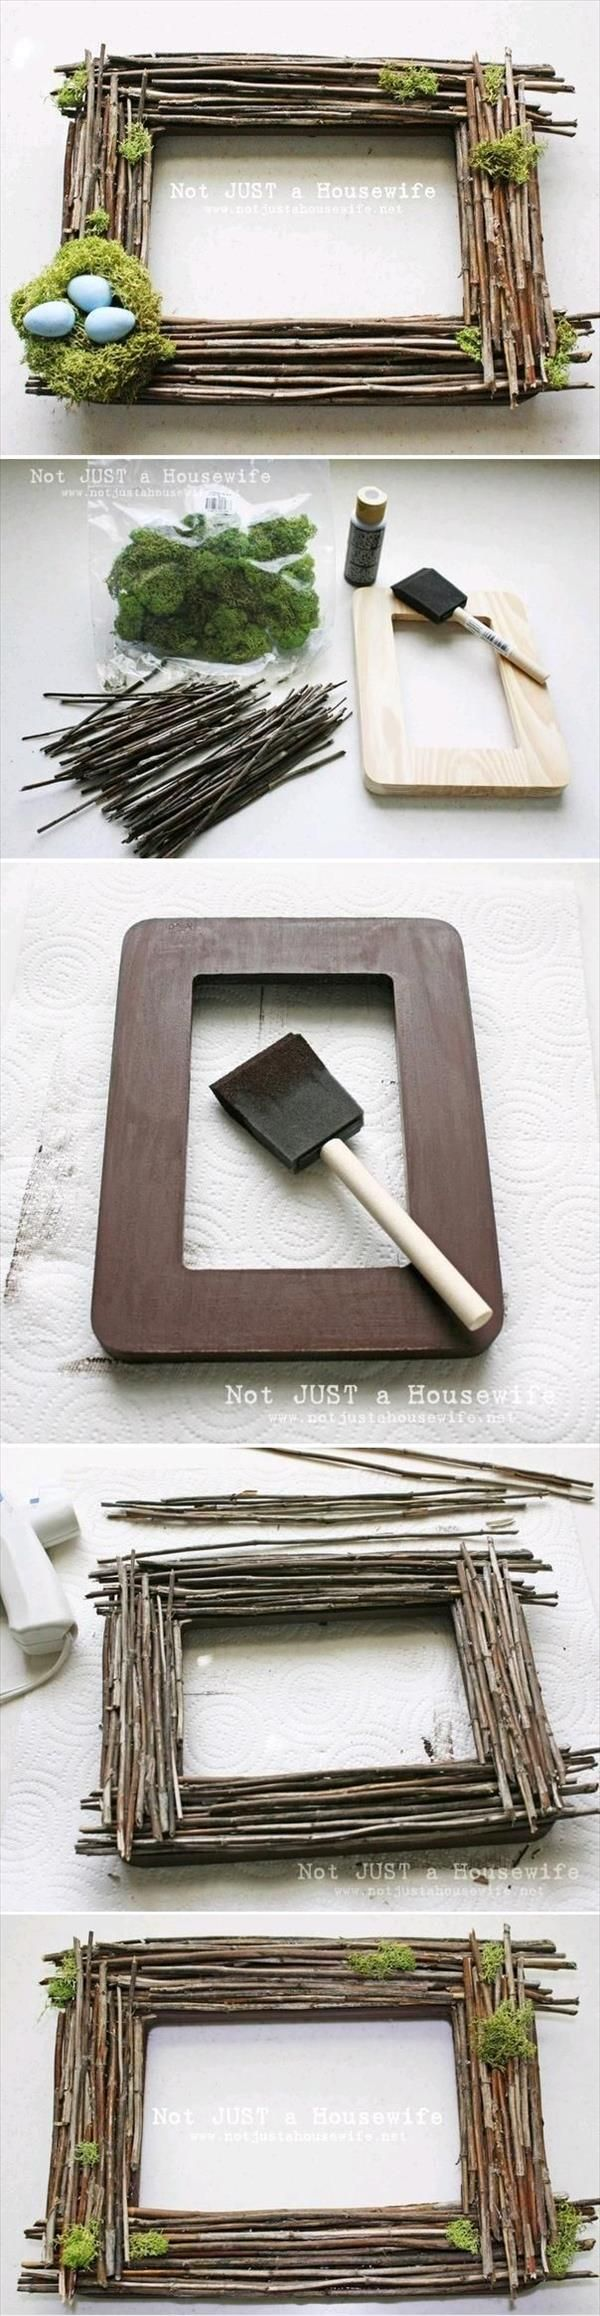 DIY Spring Frame.  PInned by Afloral.com from http://www.newnist.com/10-stunning-diy-home-decor-projects-tutorials/ ~Afloral.com has moss and faux nests for your DIY projects!